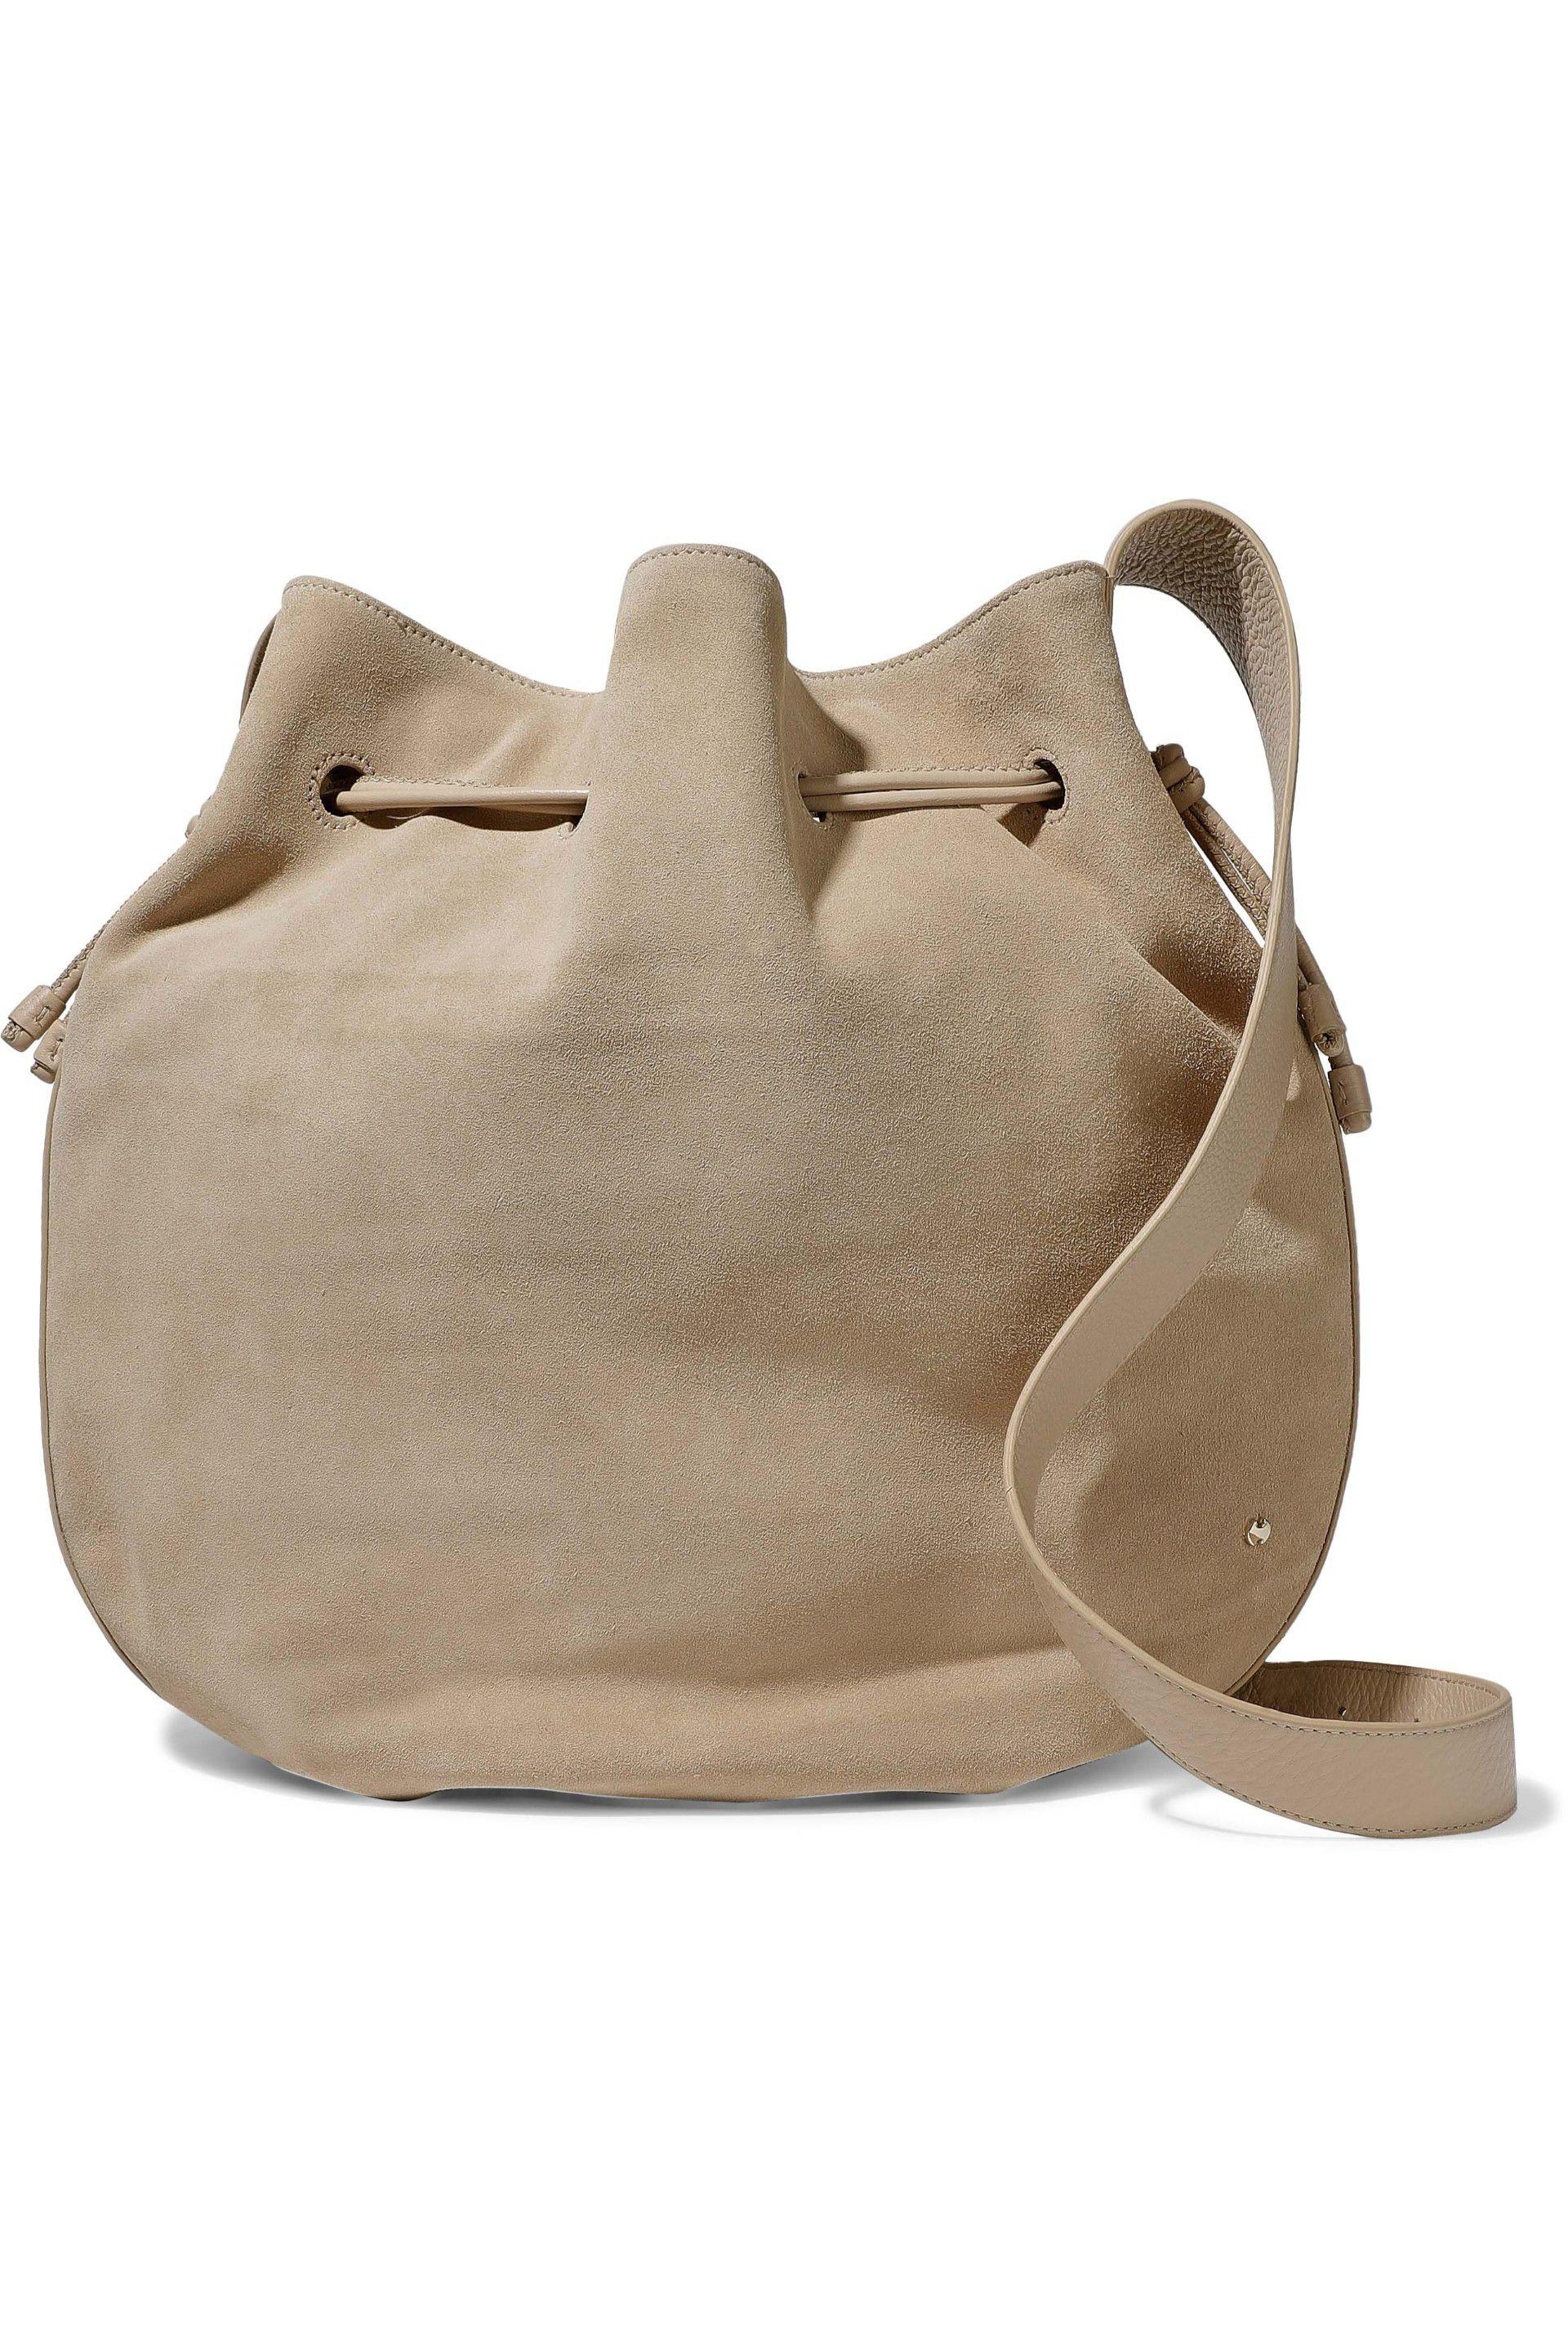 22c30f205554 Lyst - Halston Leather-trimmed Suede Bucket Bag in Natural